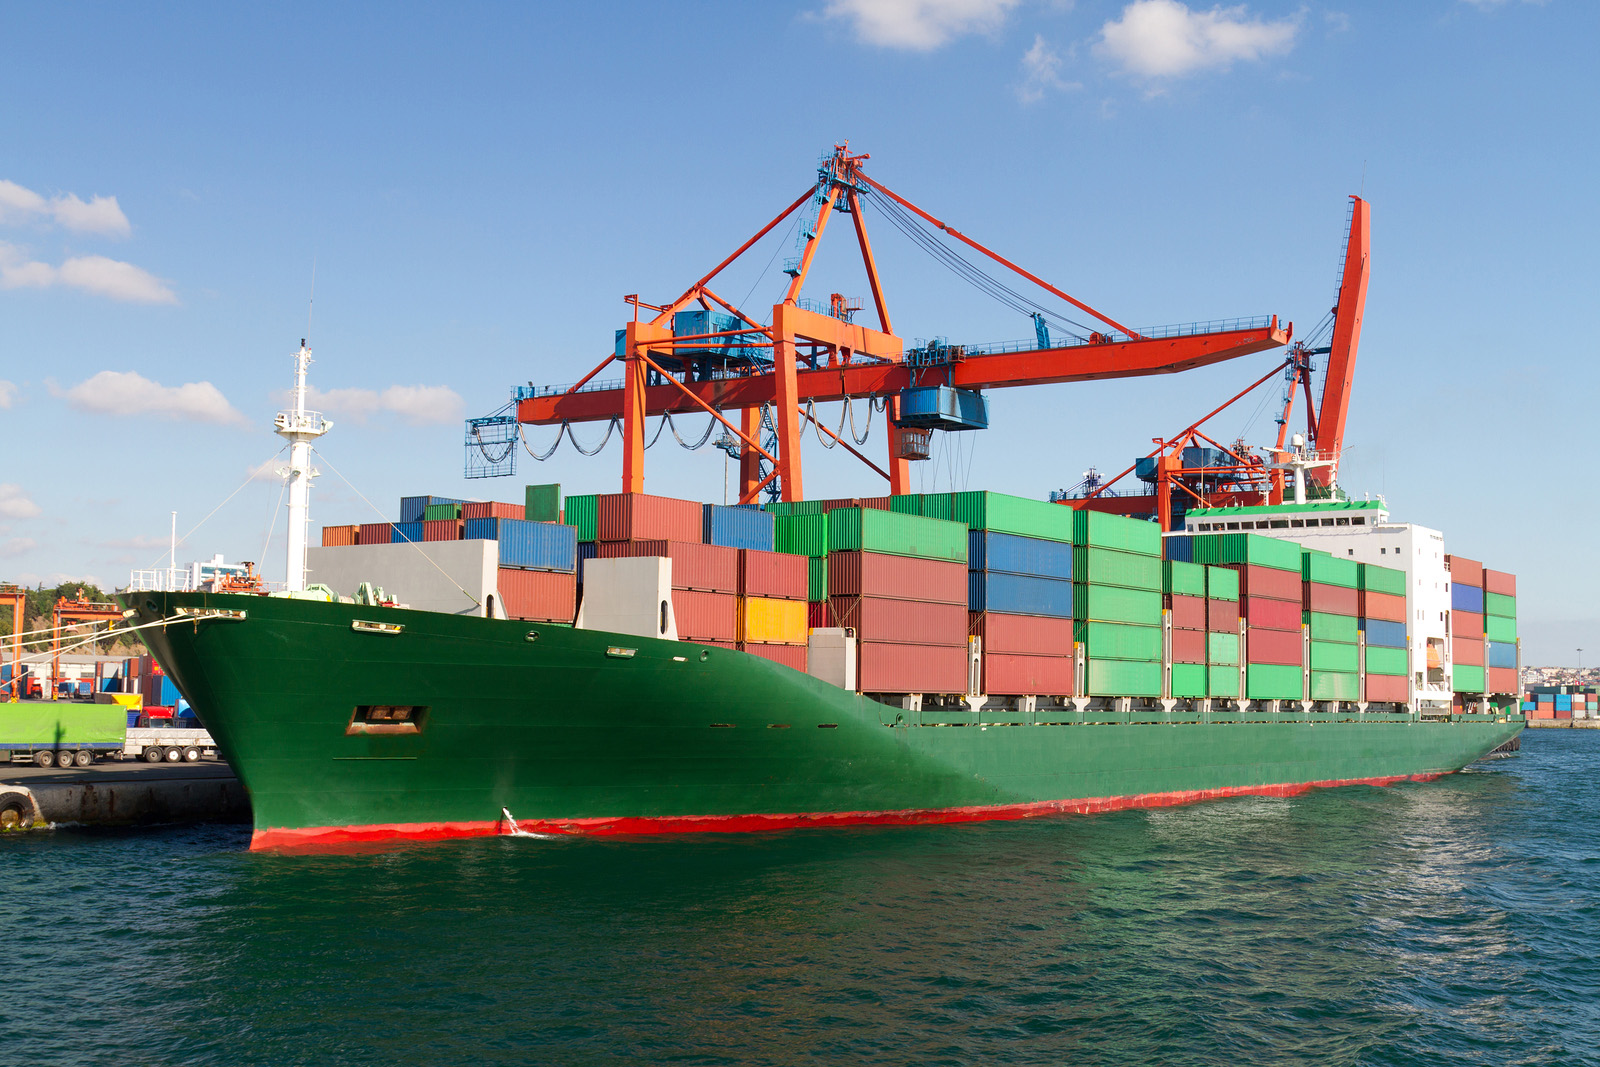 Ship loaded with containers